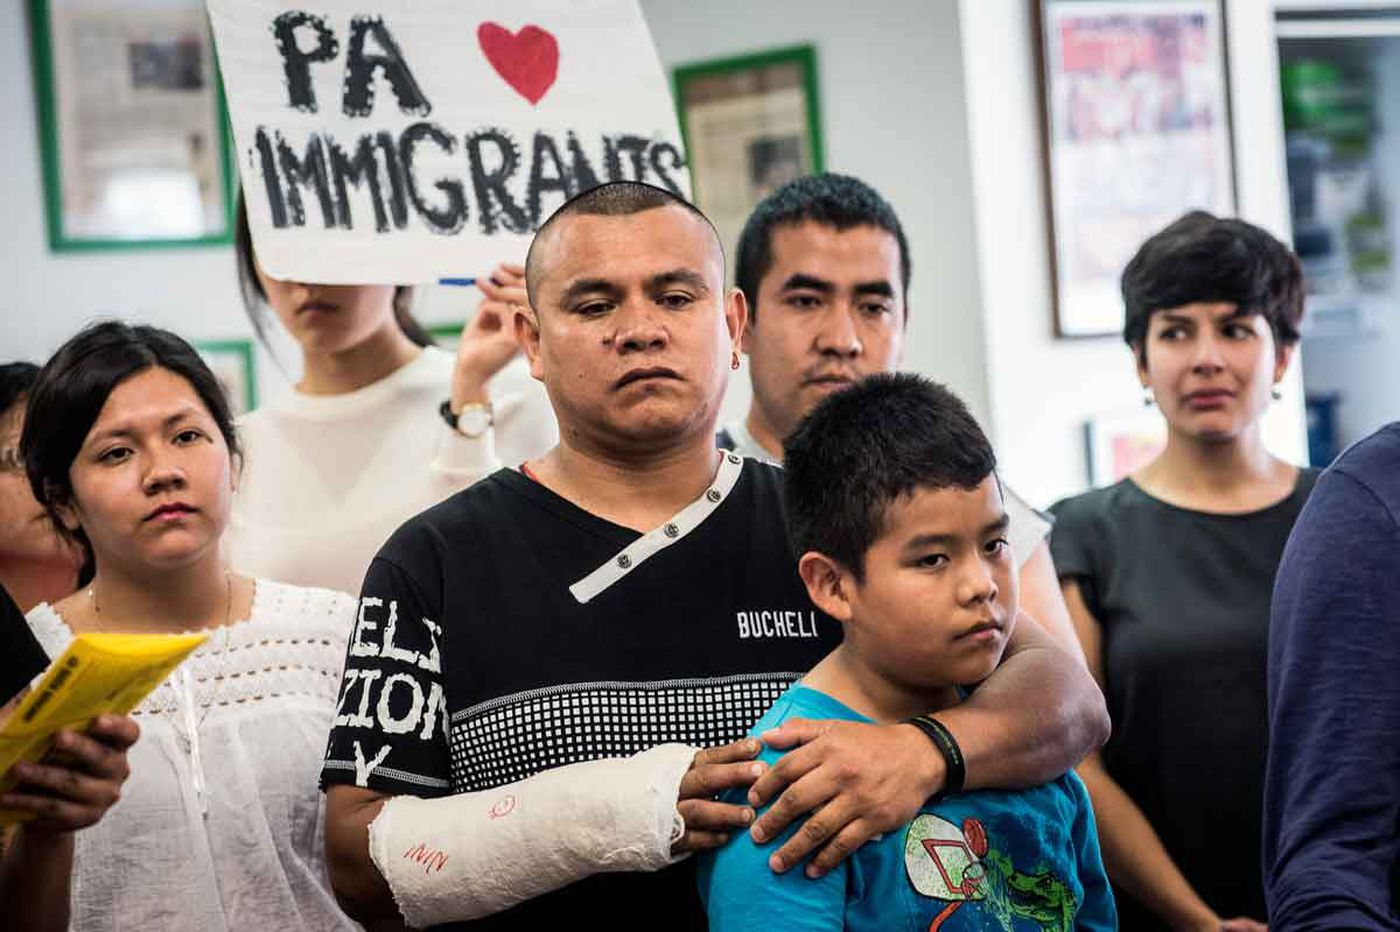 Supreme Court vote dashes hopes of immigrants here illegally